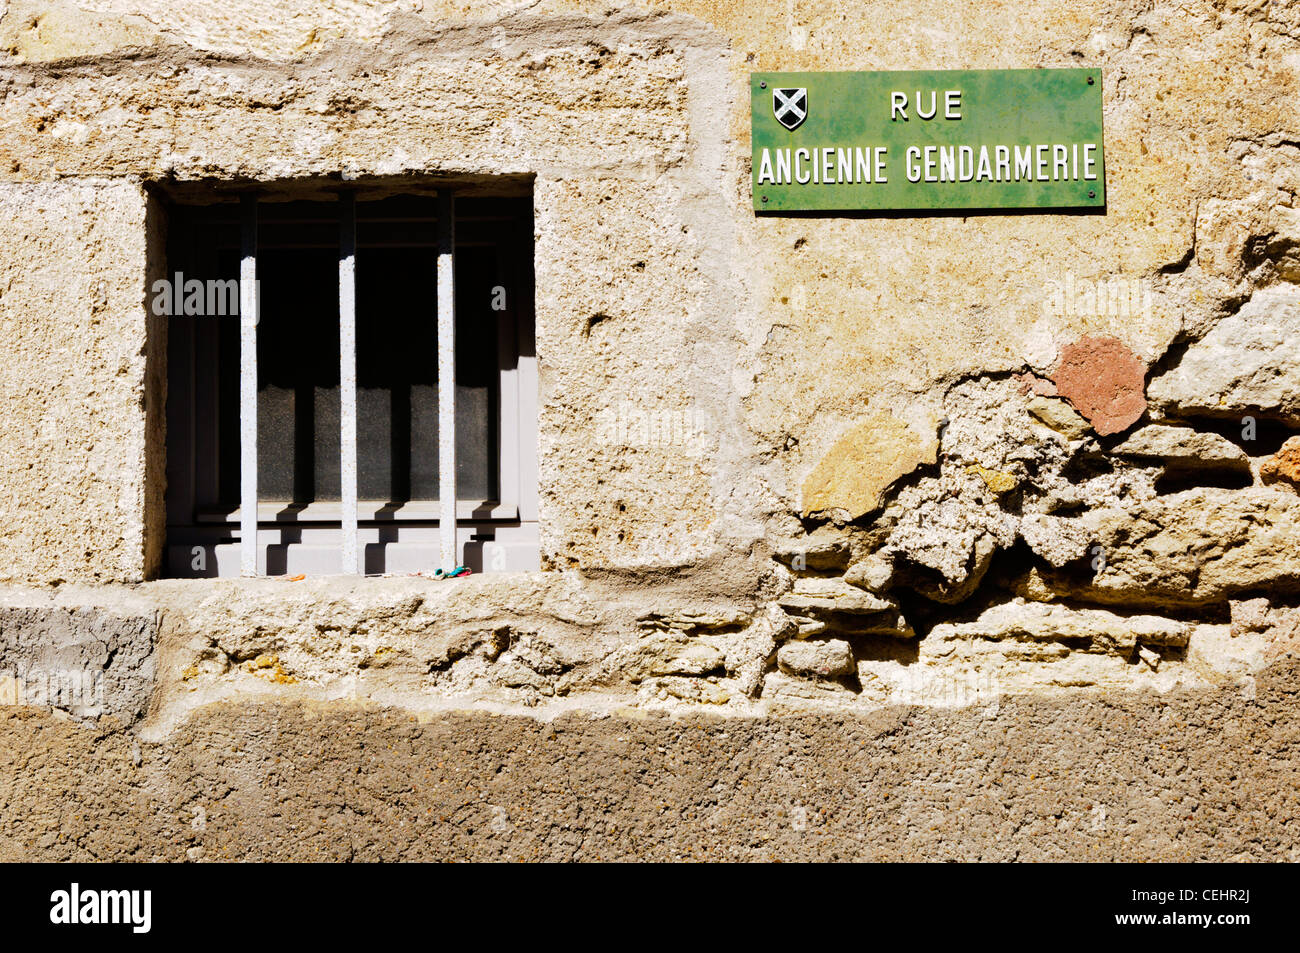 A French street name plaque for Rue Ancienne Gendarmerie. - Stock Image